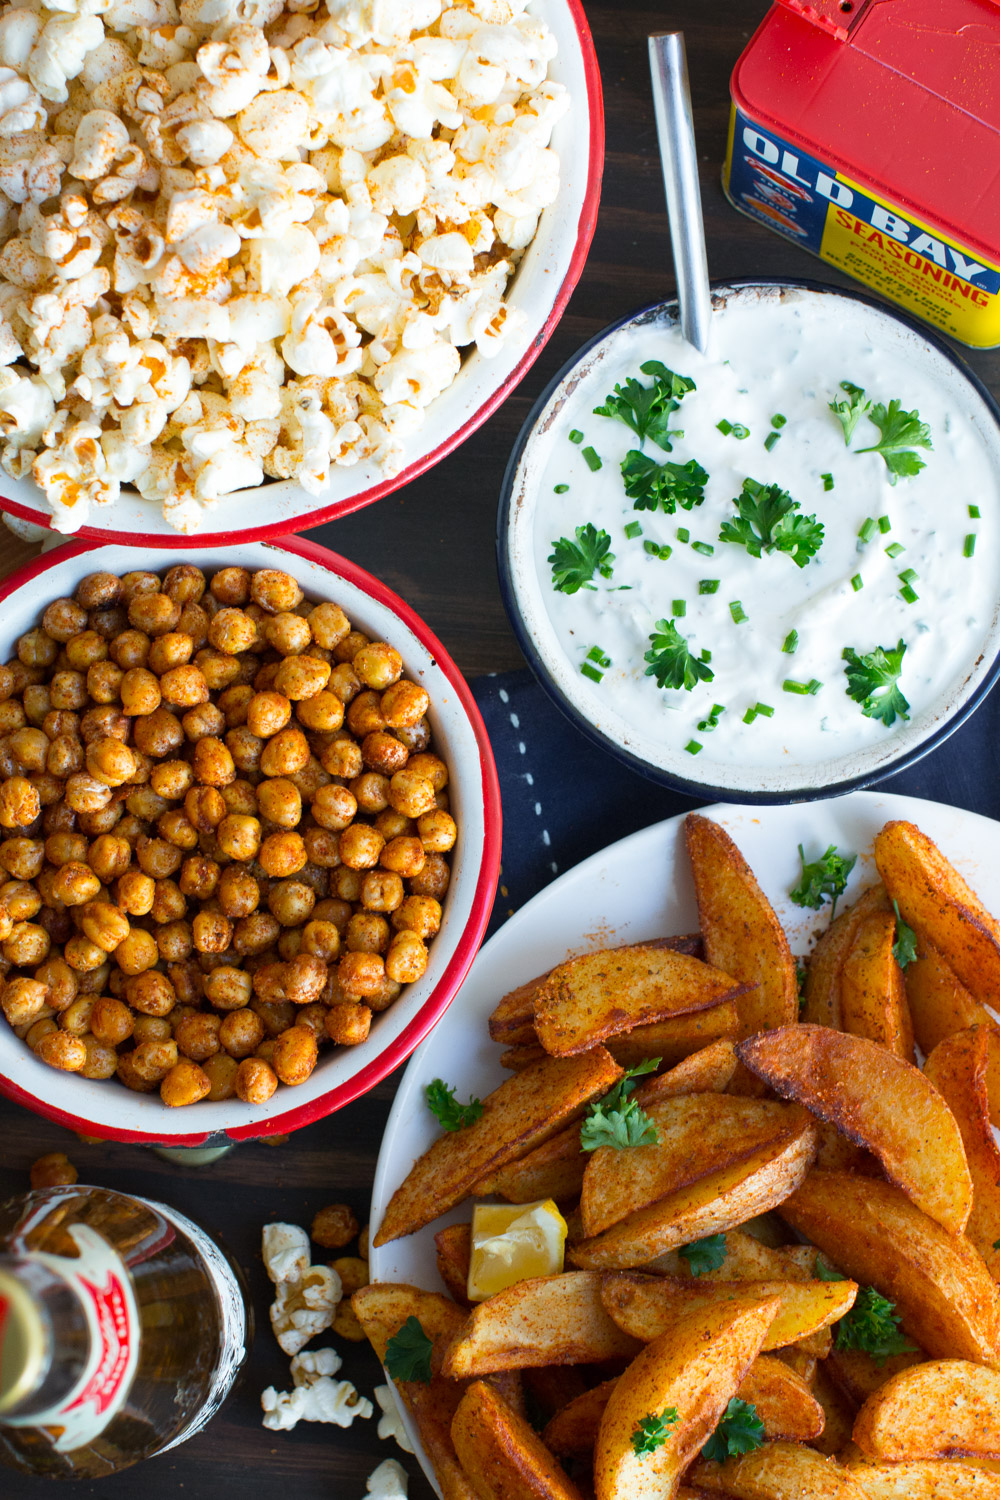 Old Bay Popcorn, Crispy Old Bay Chickpeas, and Old Bay JoJos with Tangy Yogurt Chive Dip